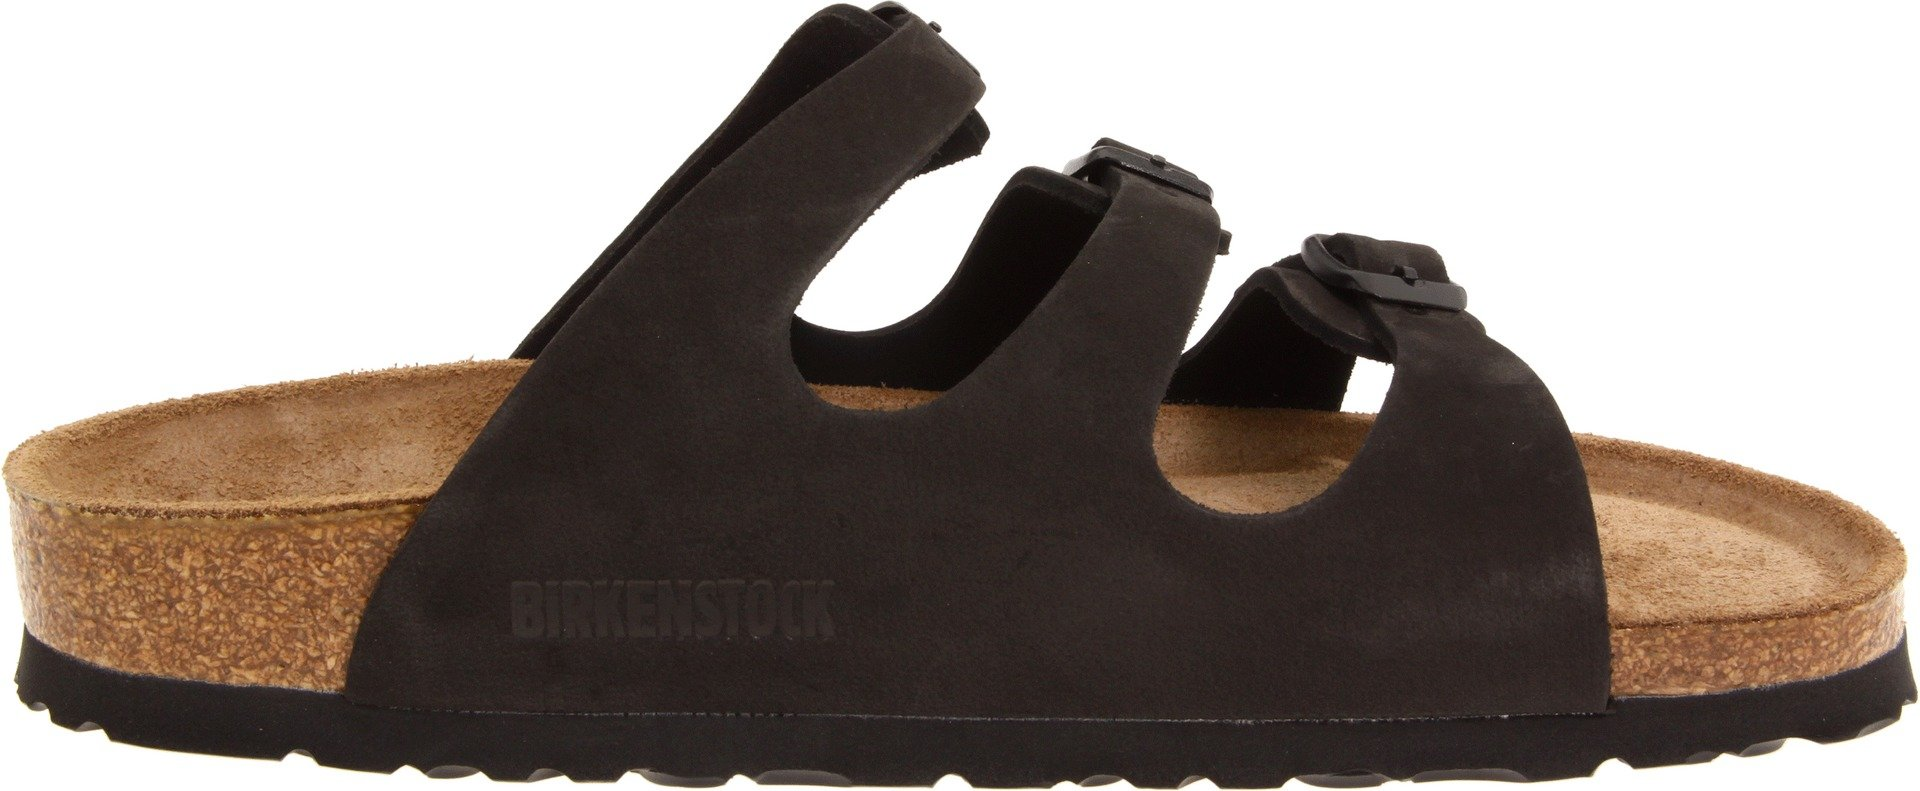 Birkenstock Women's Florida Soft Footbed Birko-Flor  Black Nubuck Sandals - 37 M EU / 6-6.5 B(M) US by Birkenstock (Image #6)